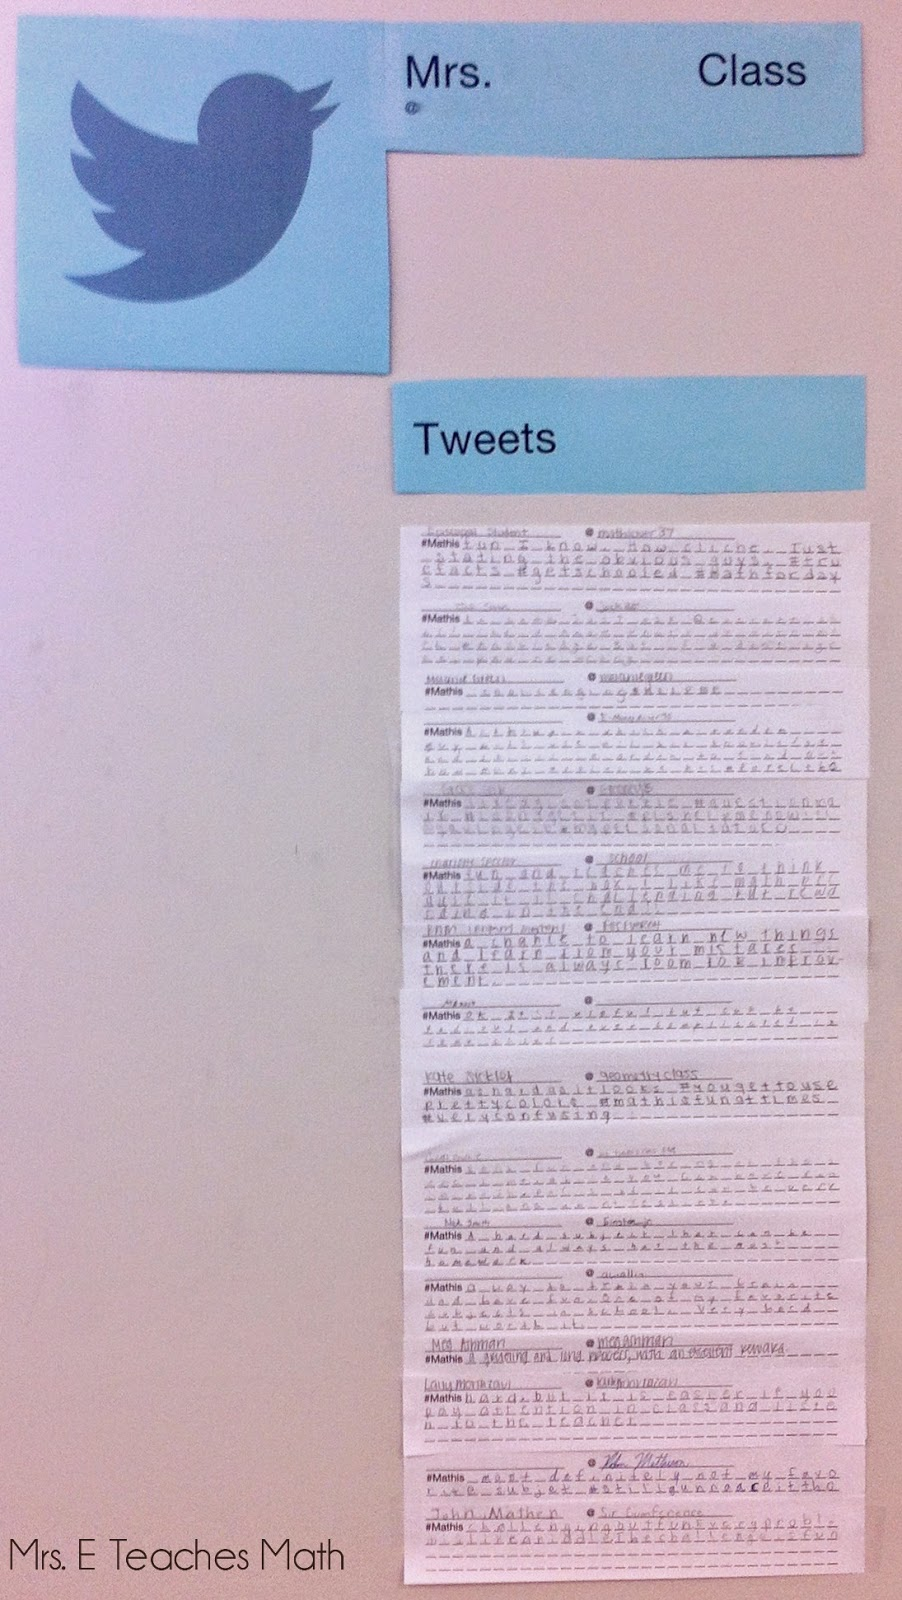 ... Math: Using Tweets as an Exit Ticket on the First Day of School